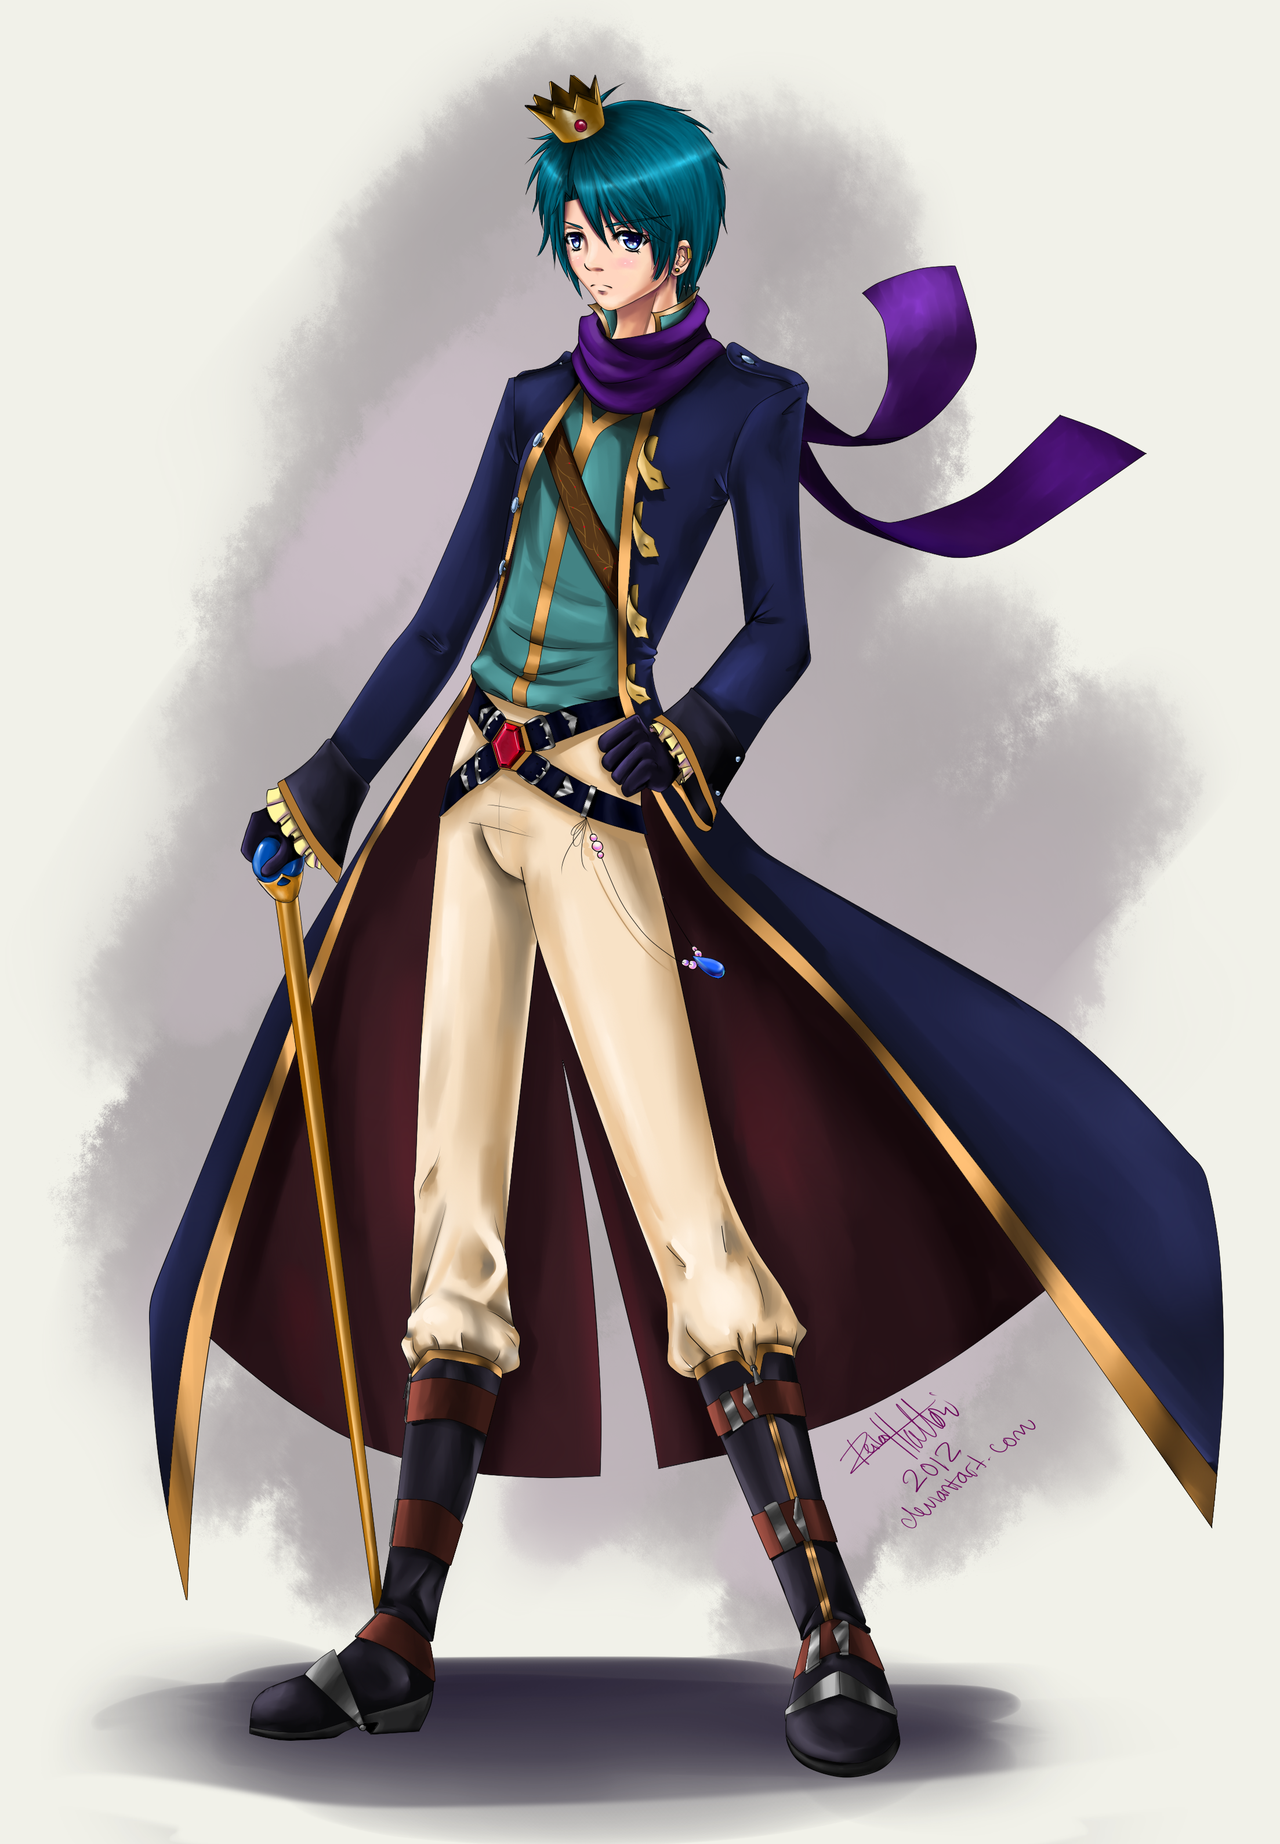 anime prince outfit - Google Search | Images to remember ...